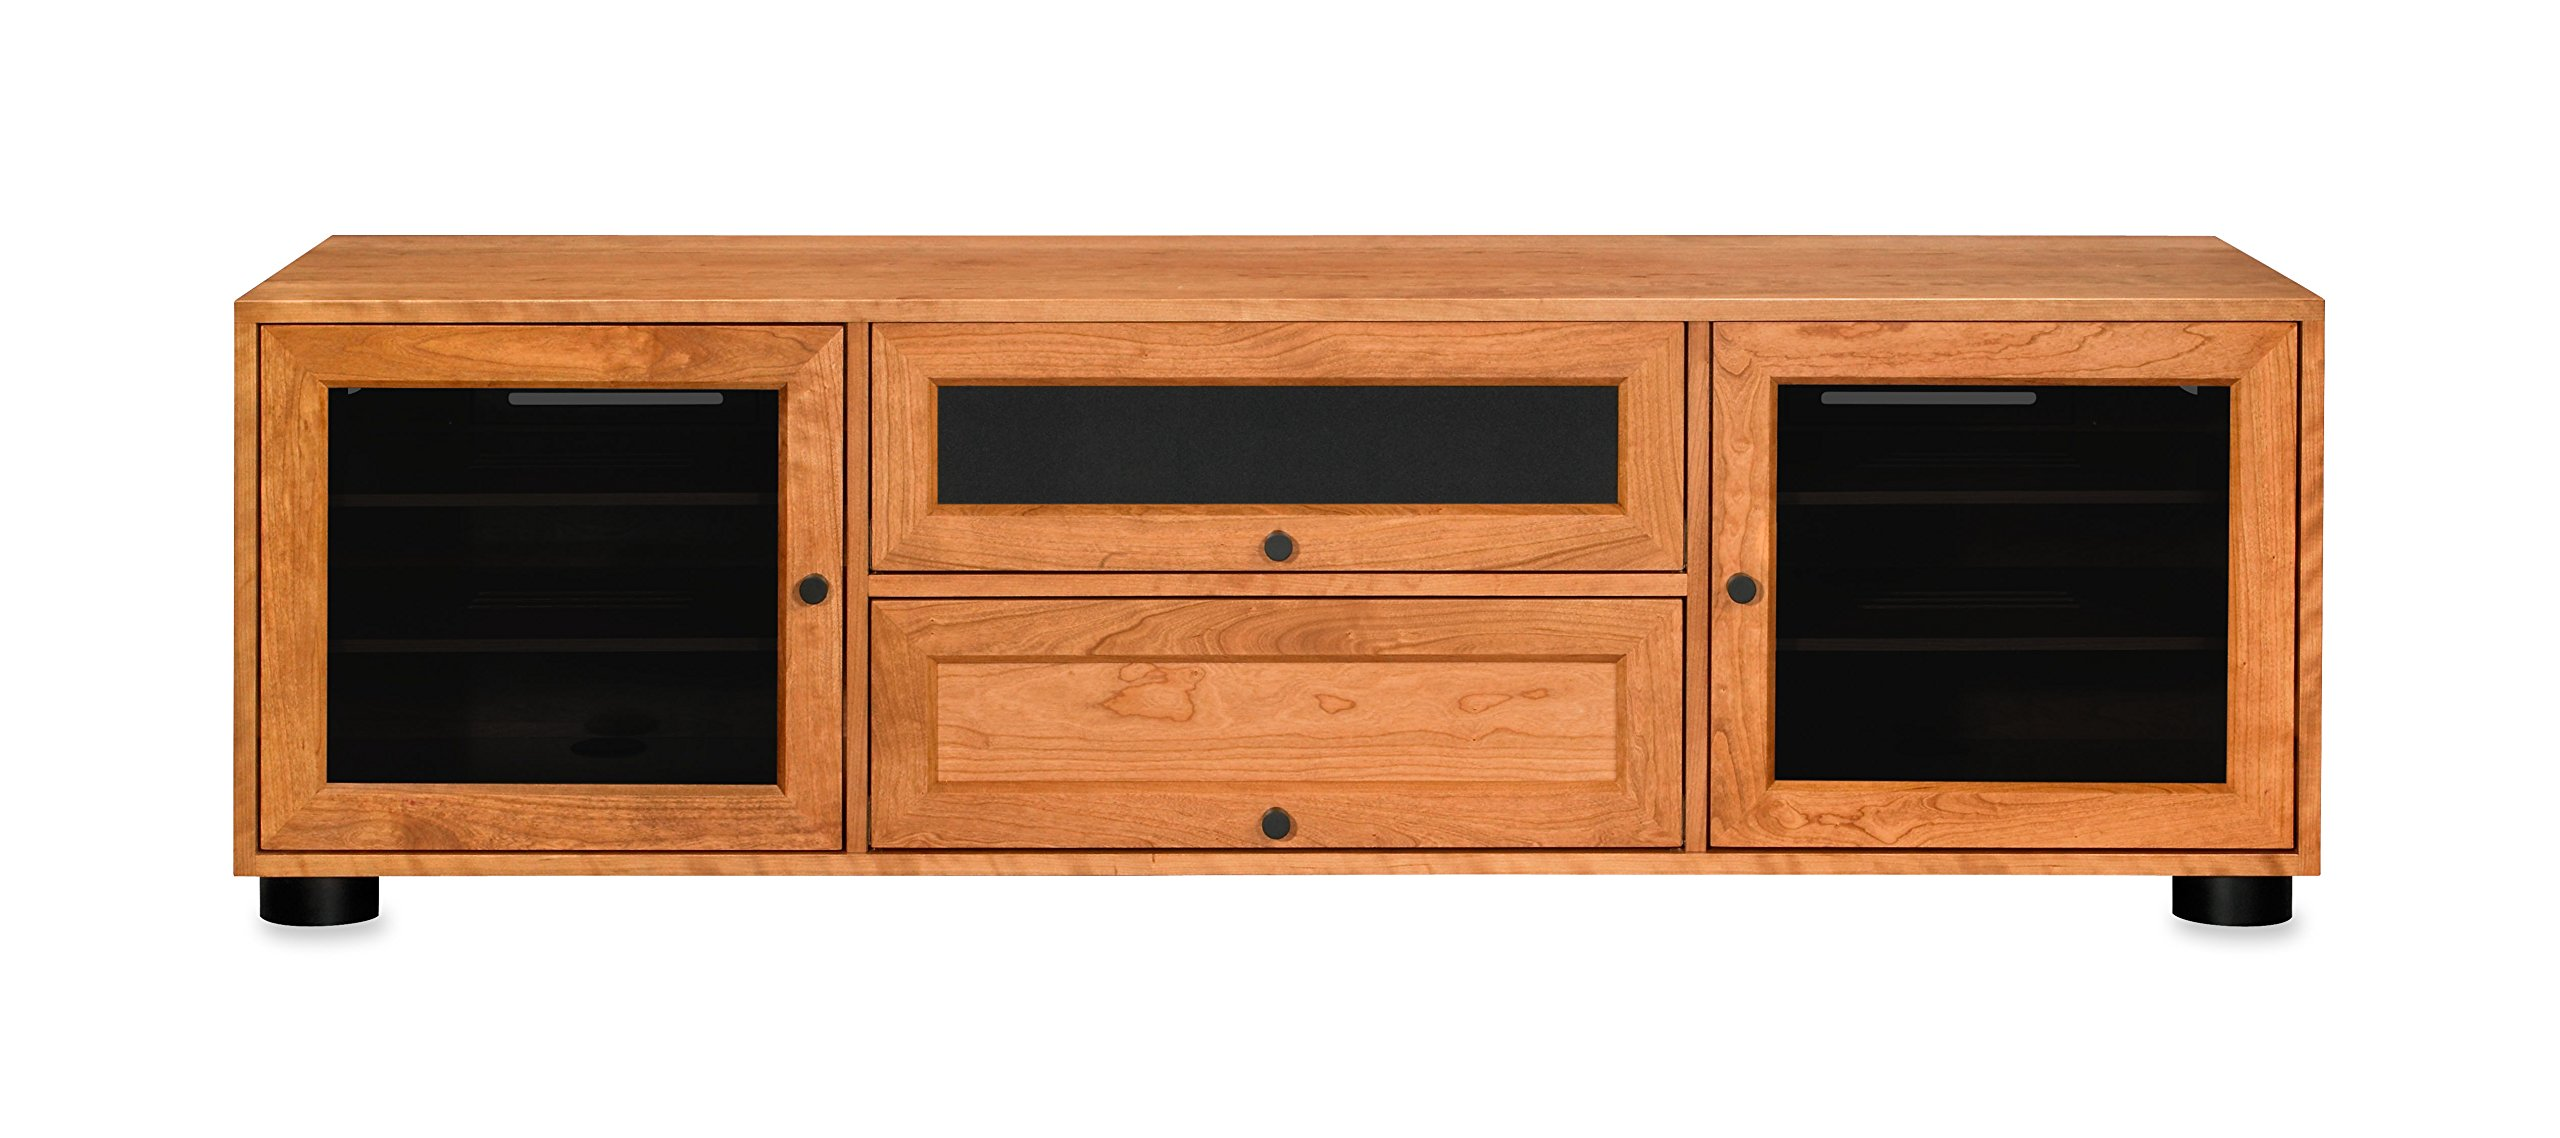 """Majestic EX 70-inch American Solid Wood Media Console/TV Stand/AV Cabinet for Most Flat Screen TVs to 75"""" (Sunrise on Cherry, Black HW) - NO ASSEMBLY REQUIRED - Made in USA using solid American Cherry, Walnut, or Ash hardwoods Configure top drawer space 3 ways: speaker in drawer, bigger speaker (no drawer), or media storage Hidden wheels, lift-off/snap-on backs and ample wire chases deliver easy gear management - tv-stands, living-room-furniture, living-room - 71rt2MabbFL -"""